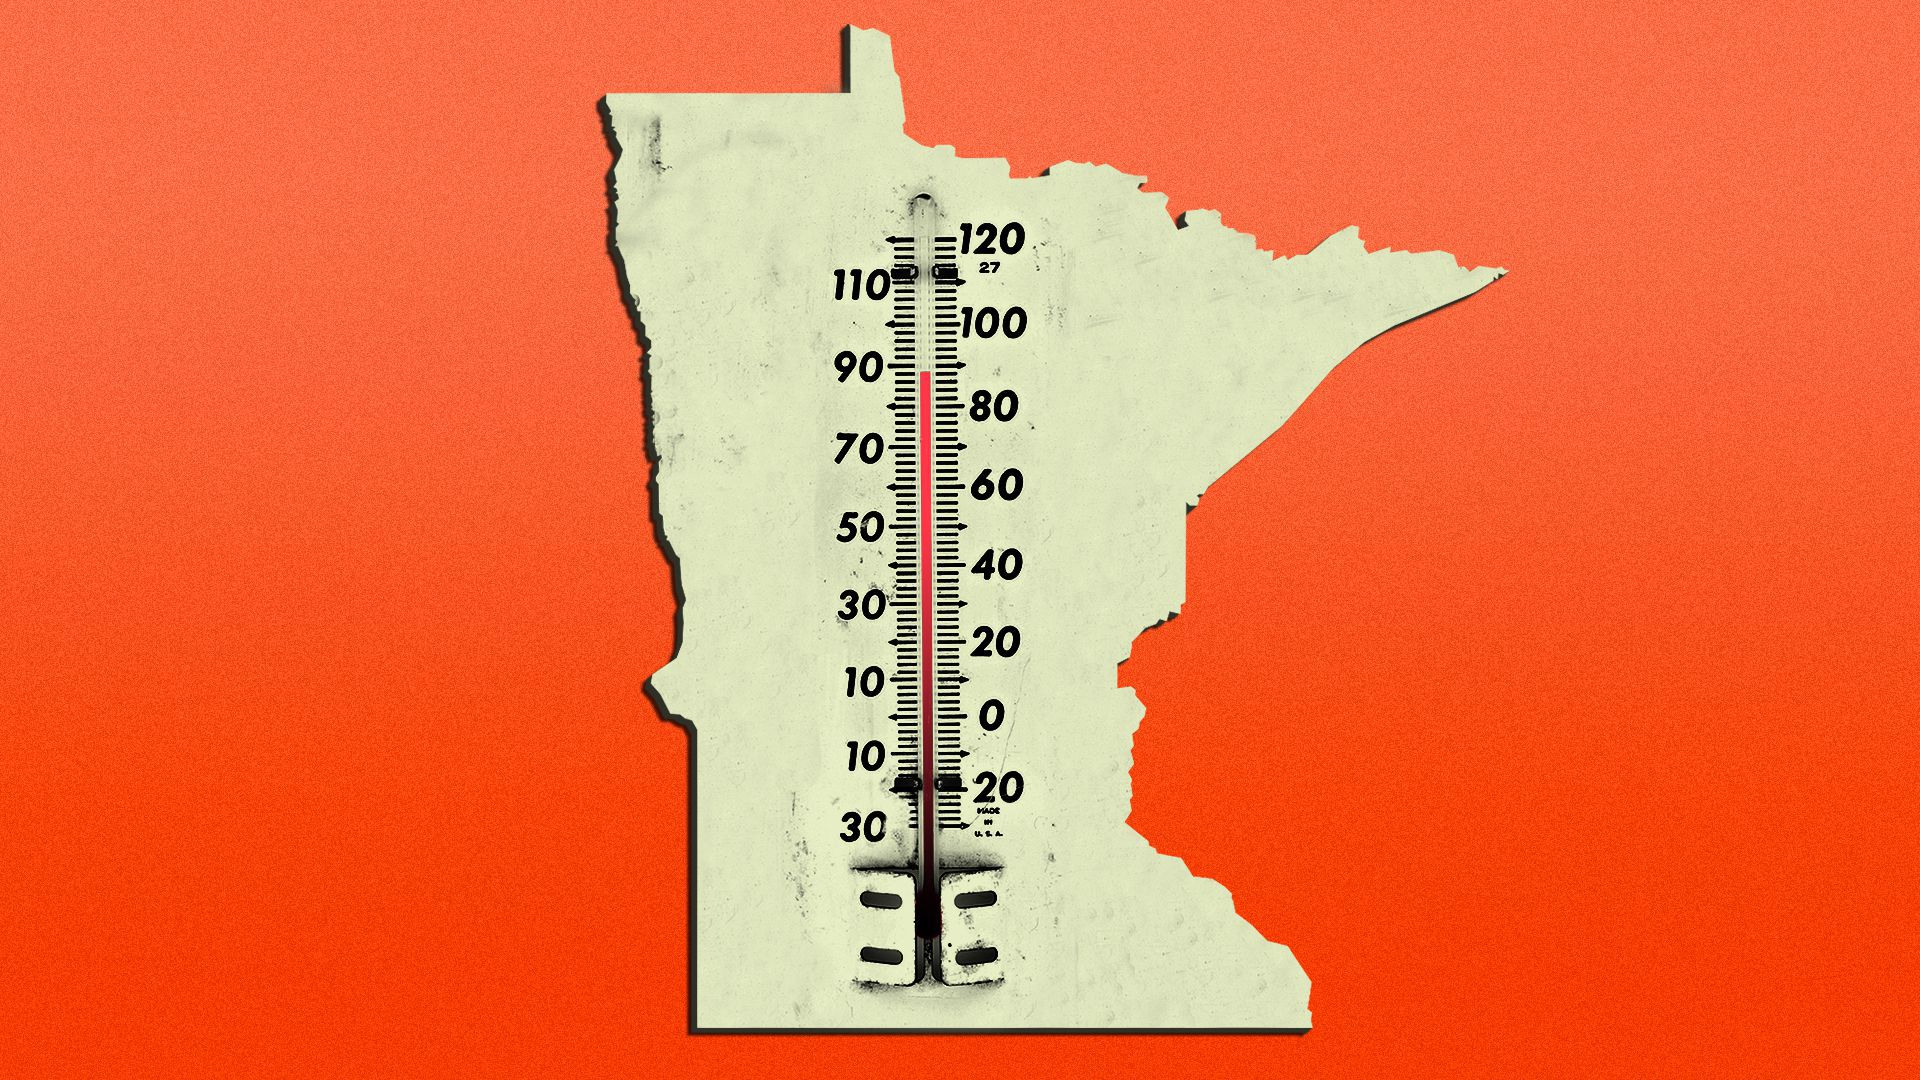 Illustration of a thermometer in the shape of Minnesota registering 90 degrees.